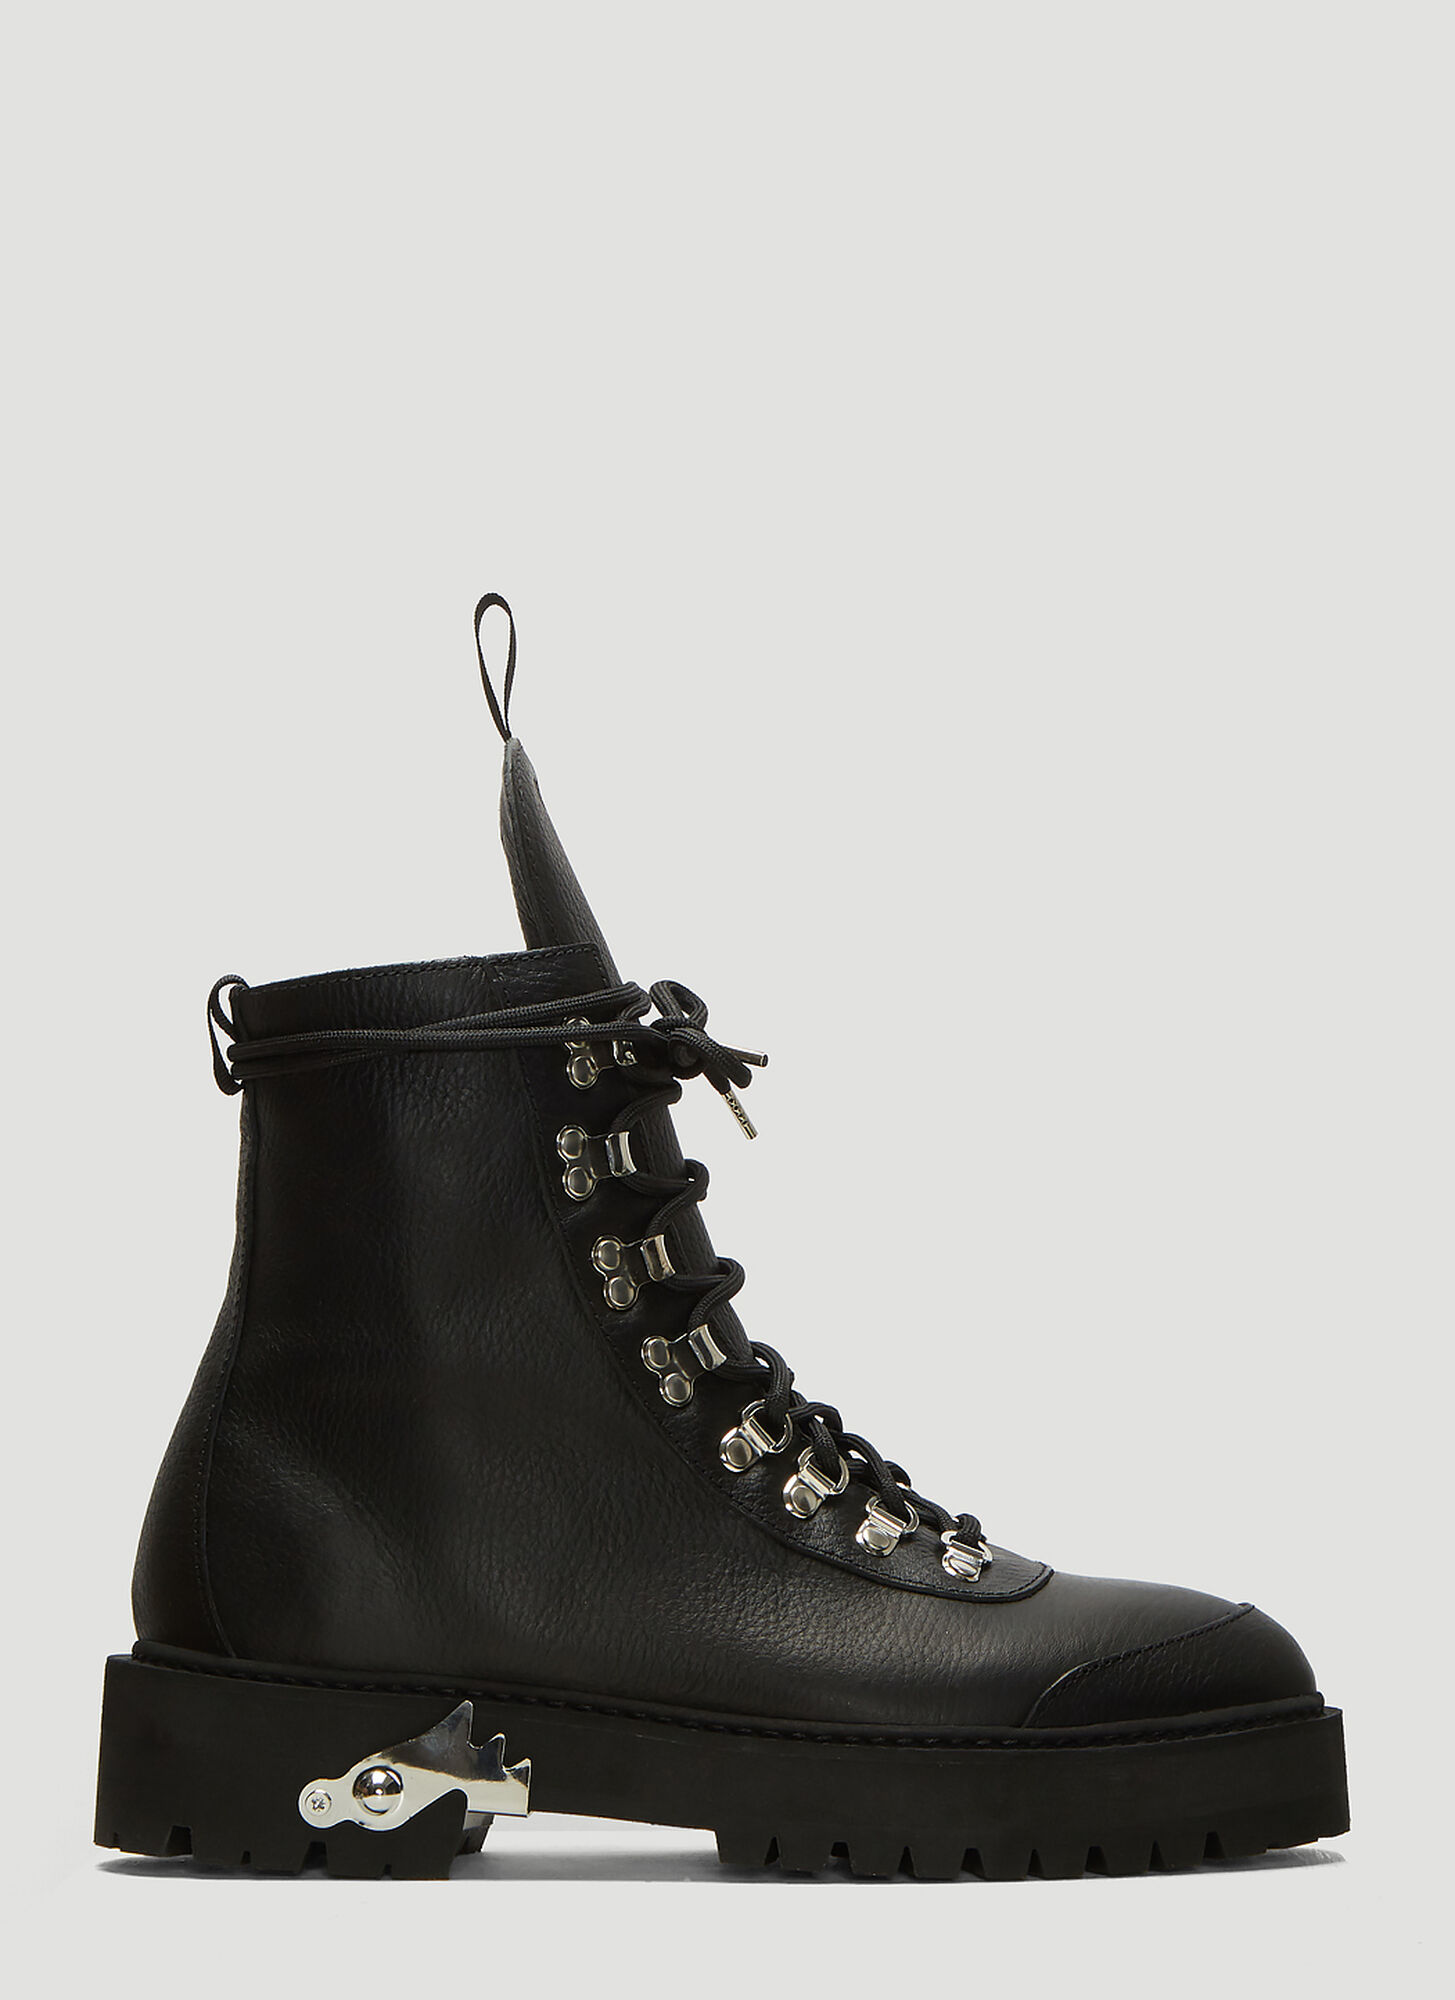 Off-White Leather Hiking Boots in Black